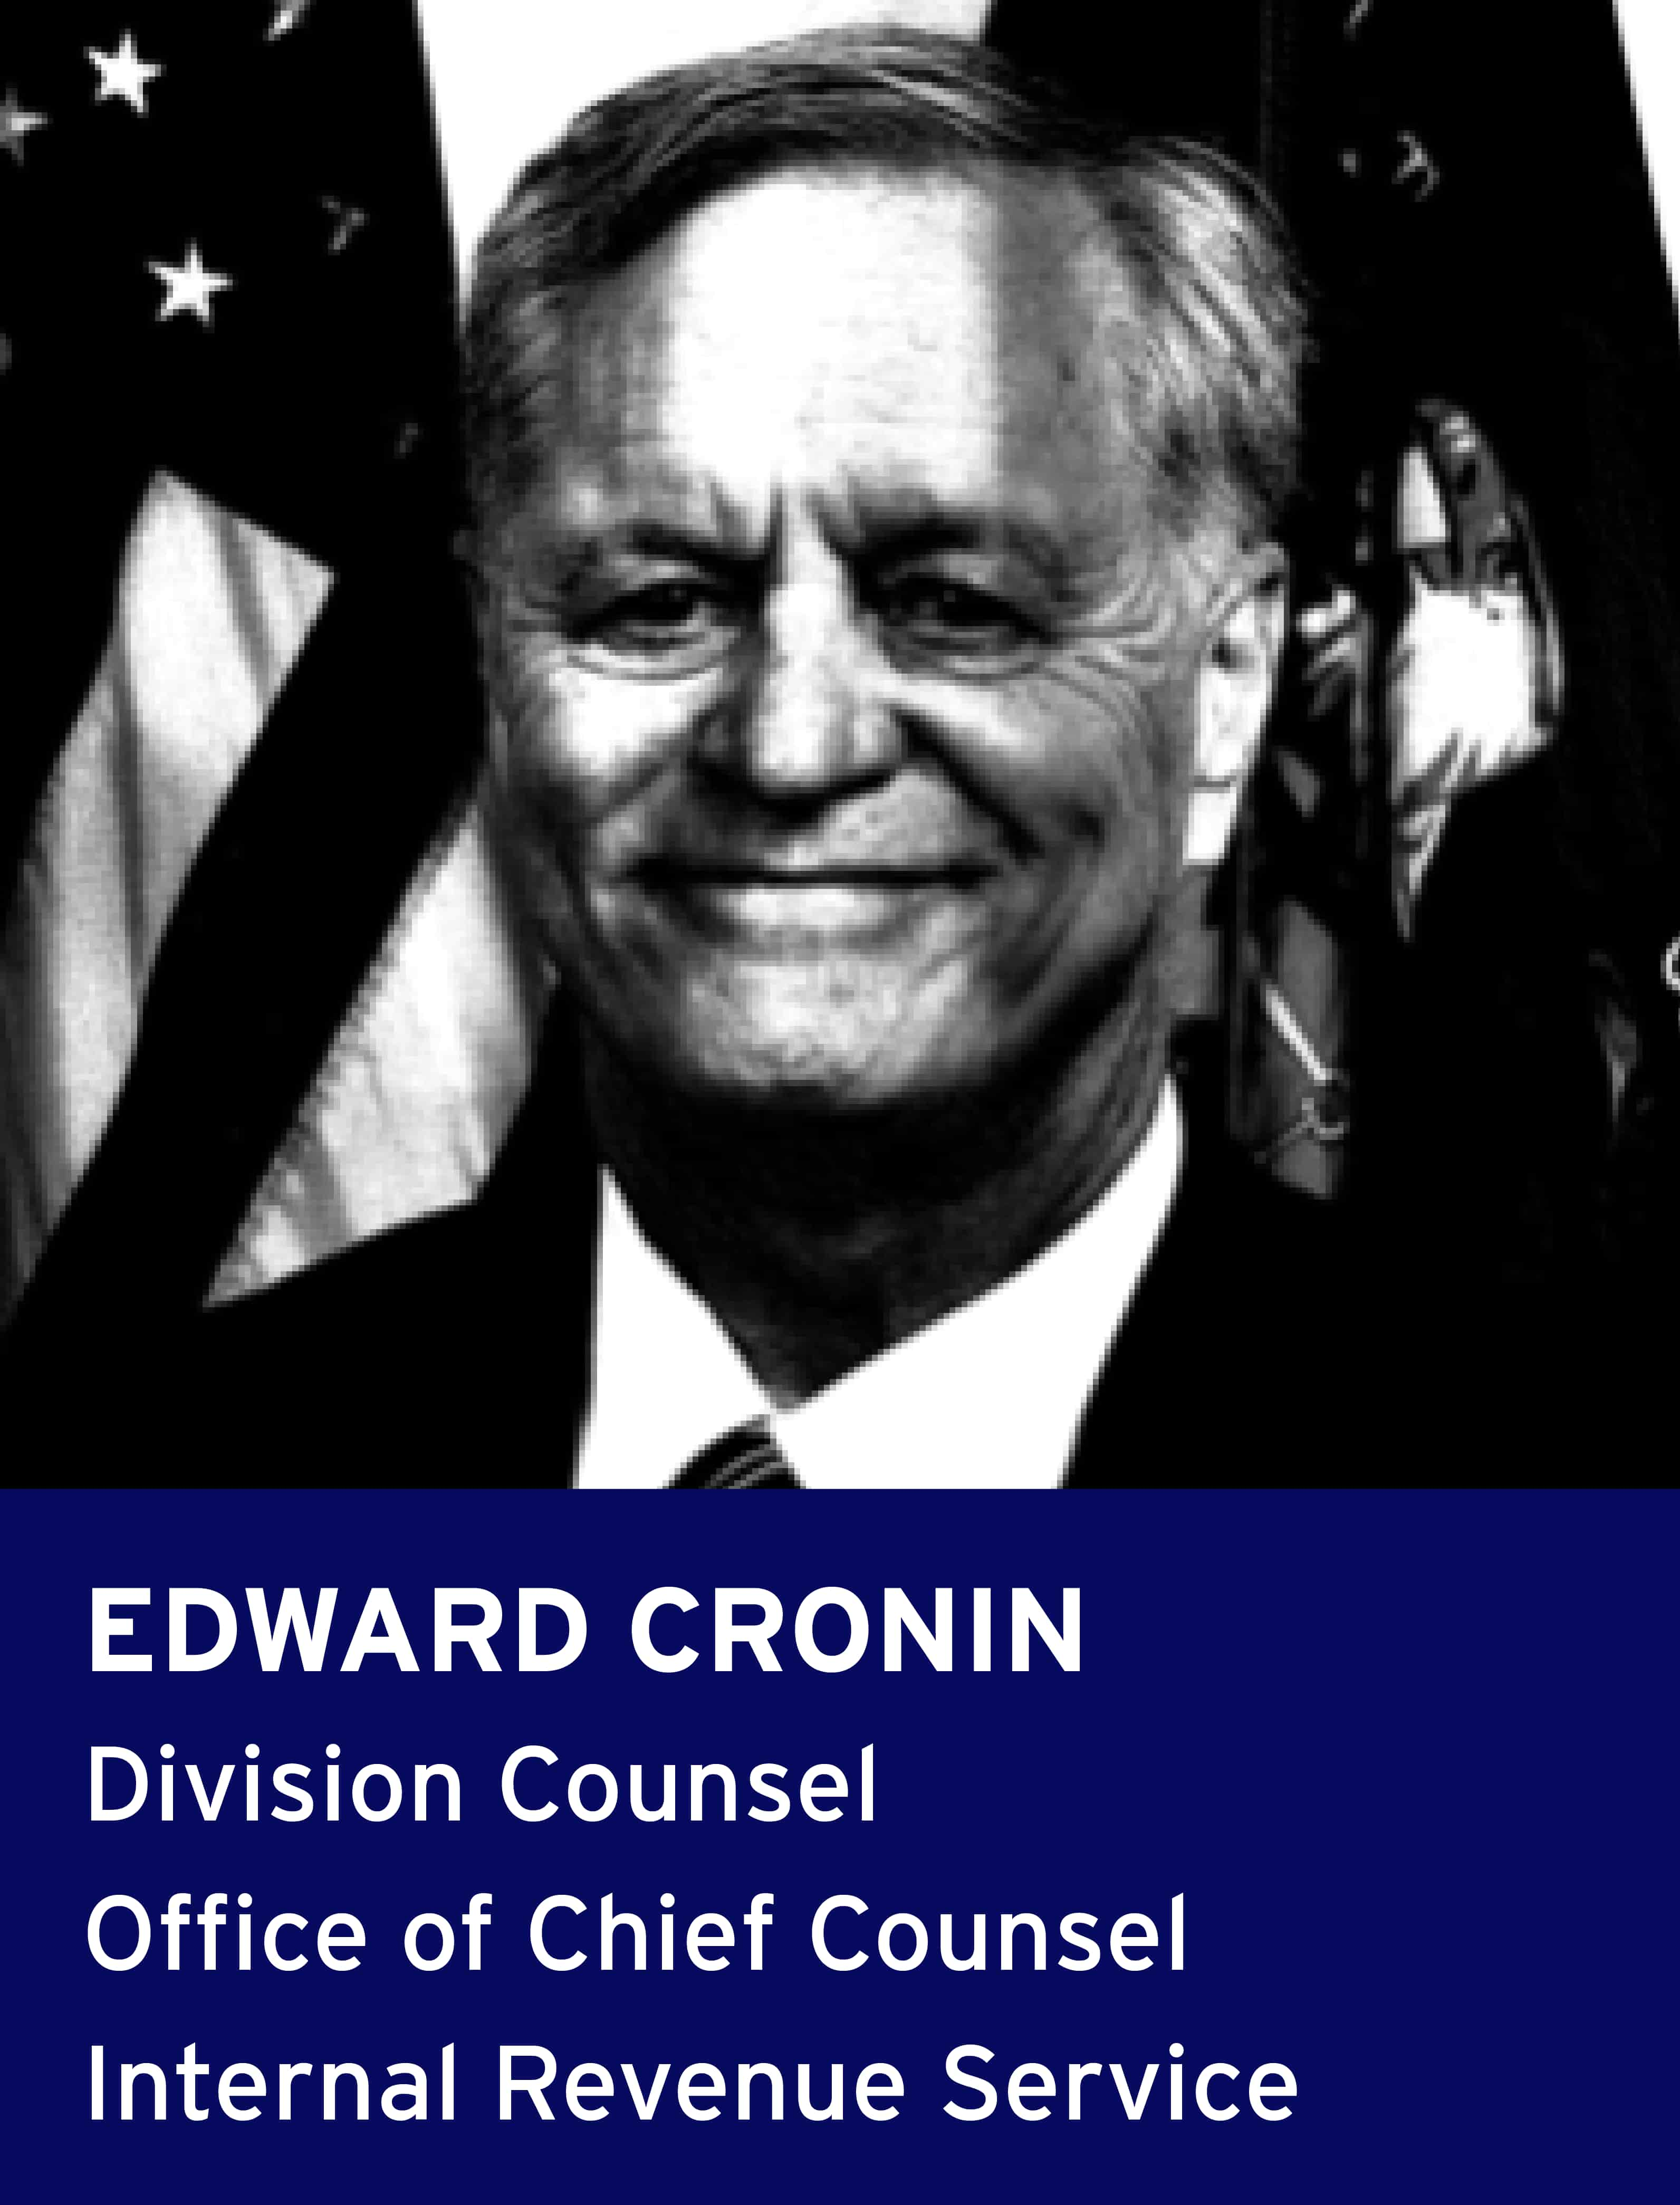 Edward Cronin, Division Counsel, Office of Chief Counsel, Internal Revenue Service